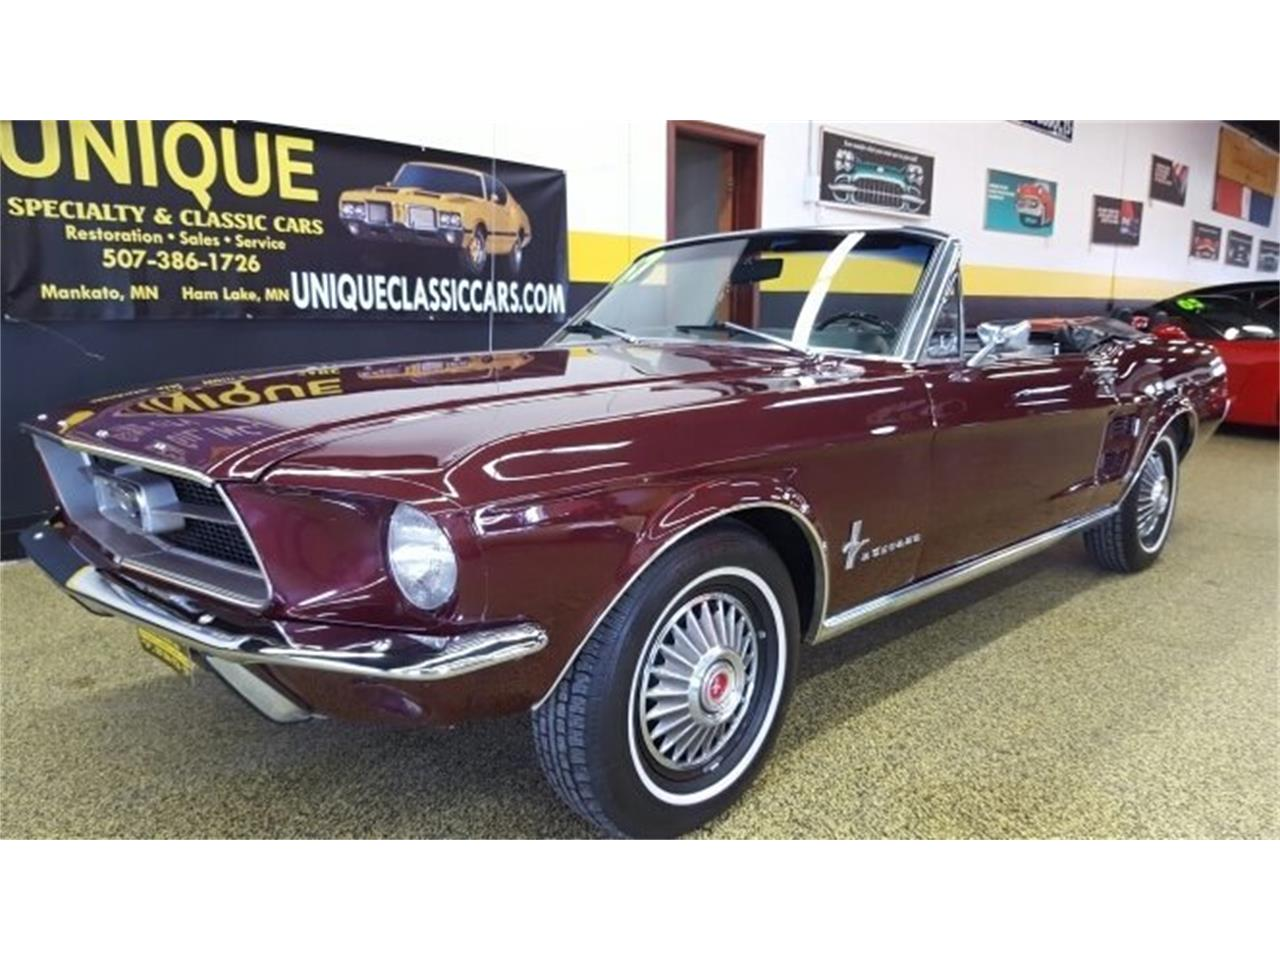 Large Picture Of 67 Mustang Convertible La10